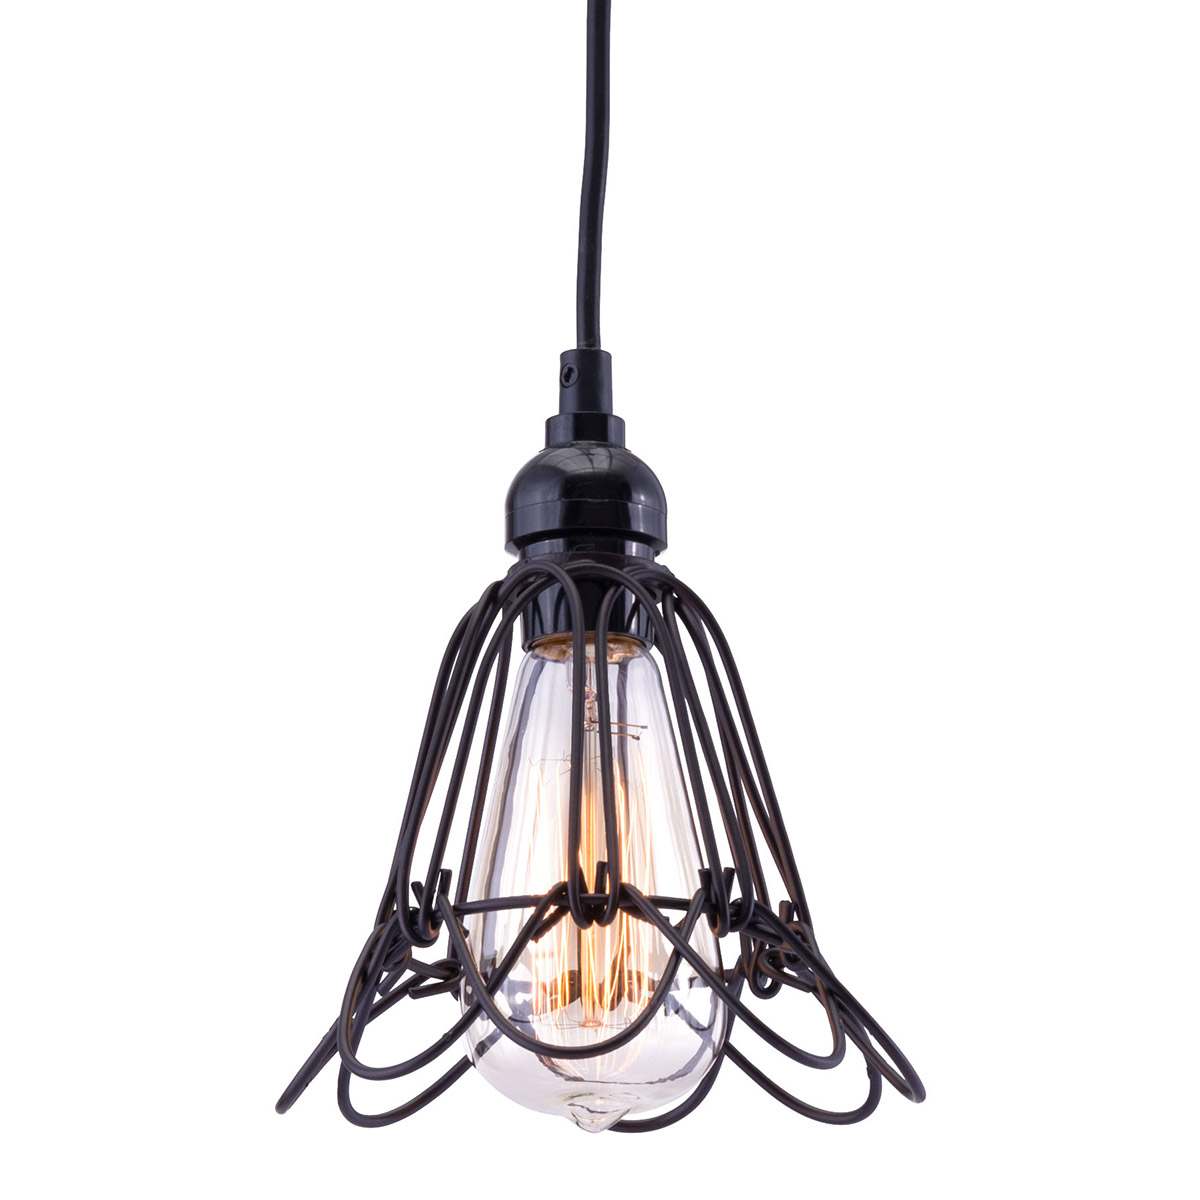 Zuo Modern Lighting Canada Zuo Era Hastings Distressed Black Ceiling Lamp